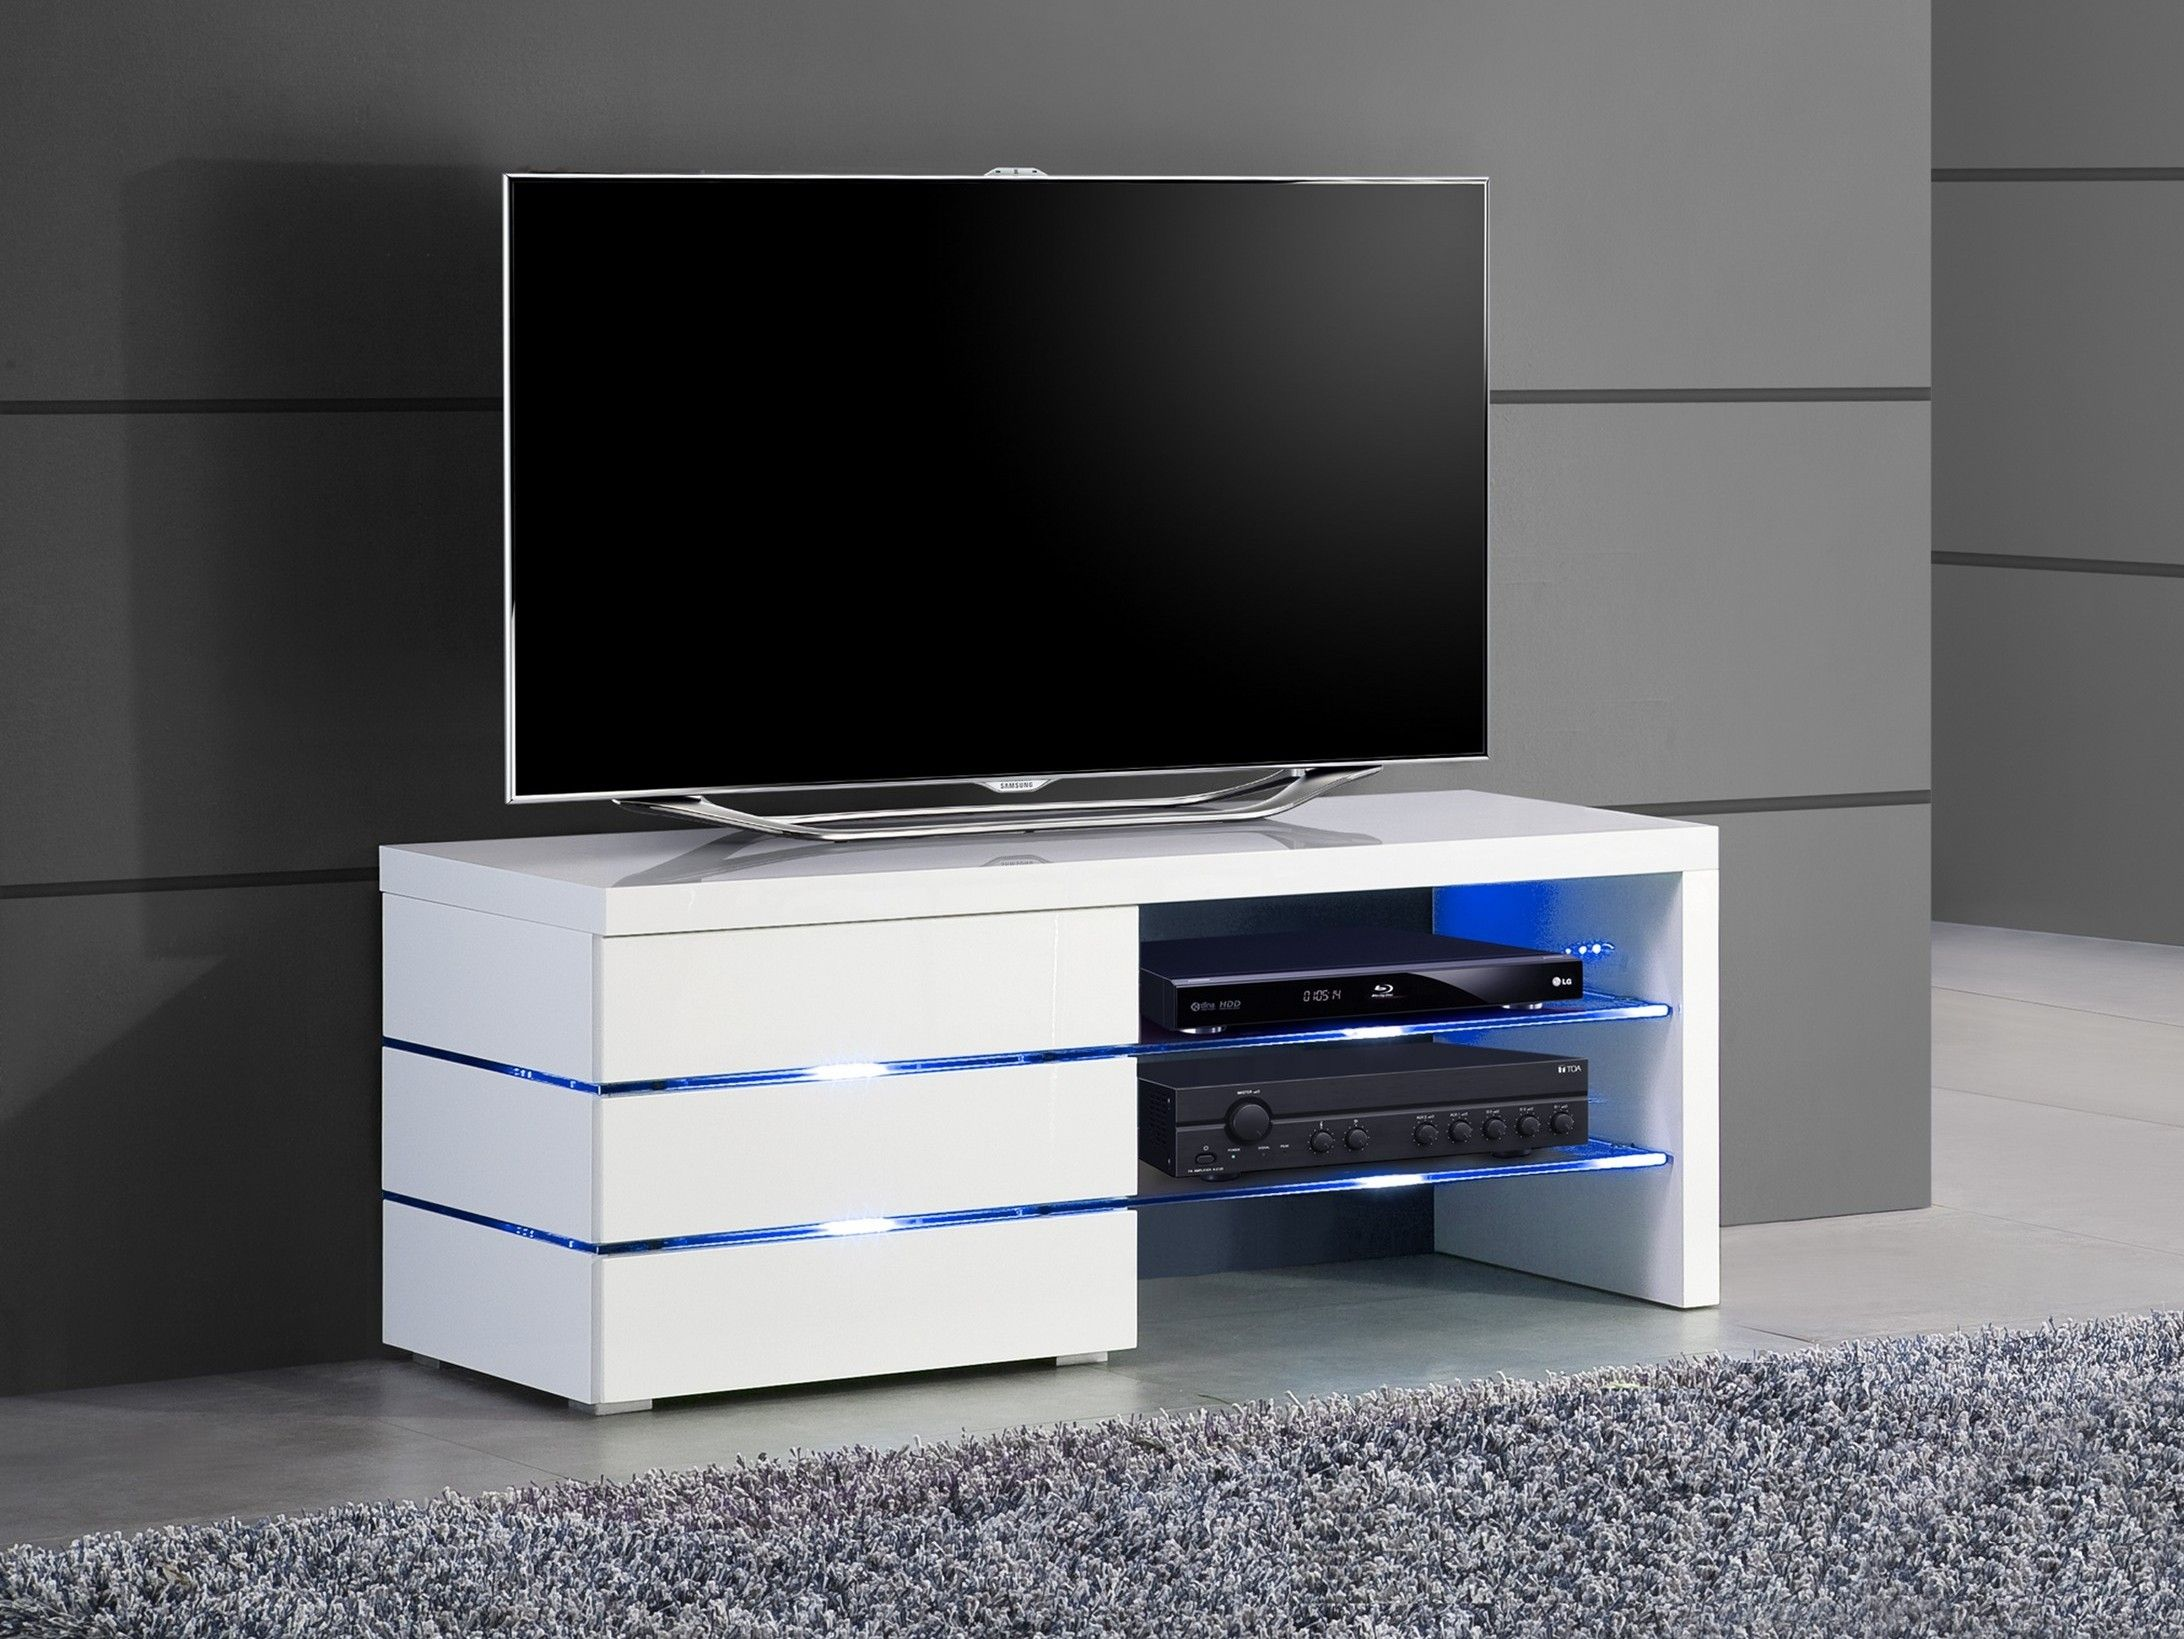 Impressionnant Meuble Tv Pour Chambre Living Room Designs Design Room Design